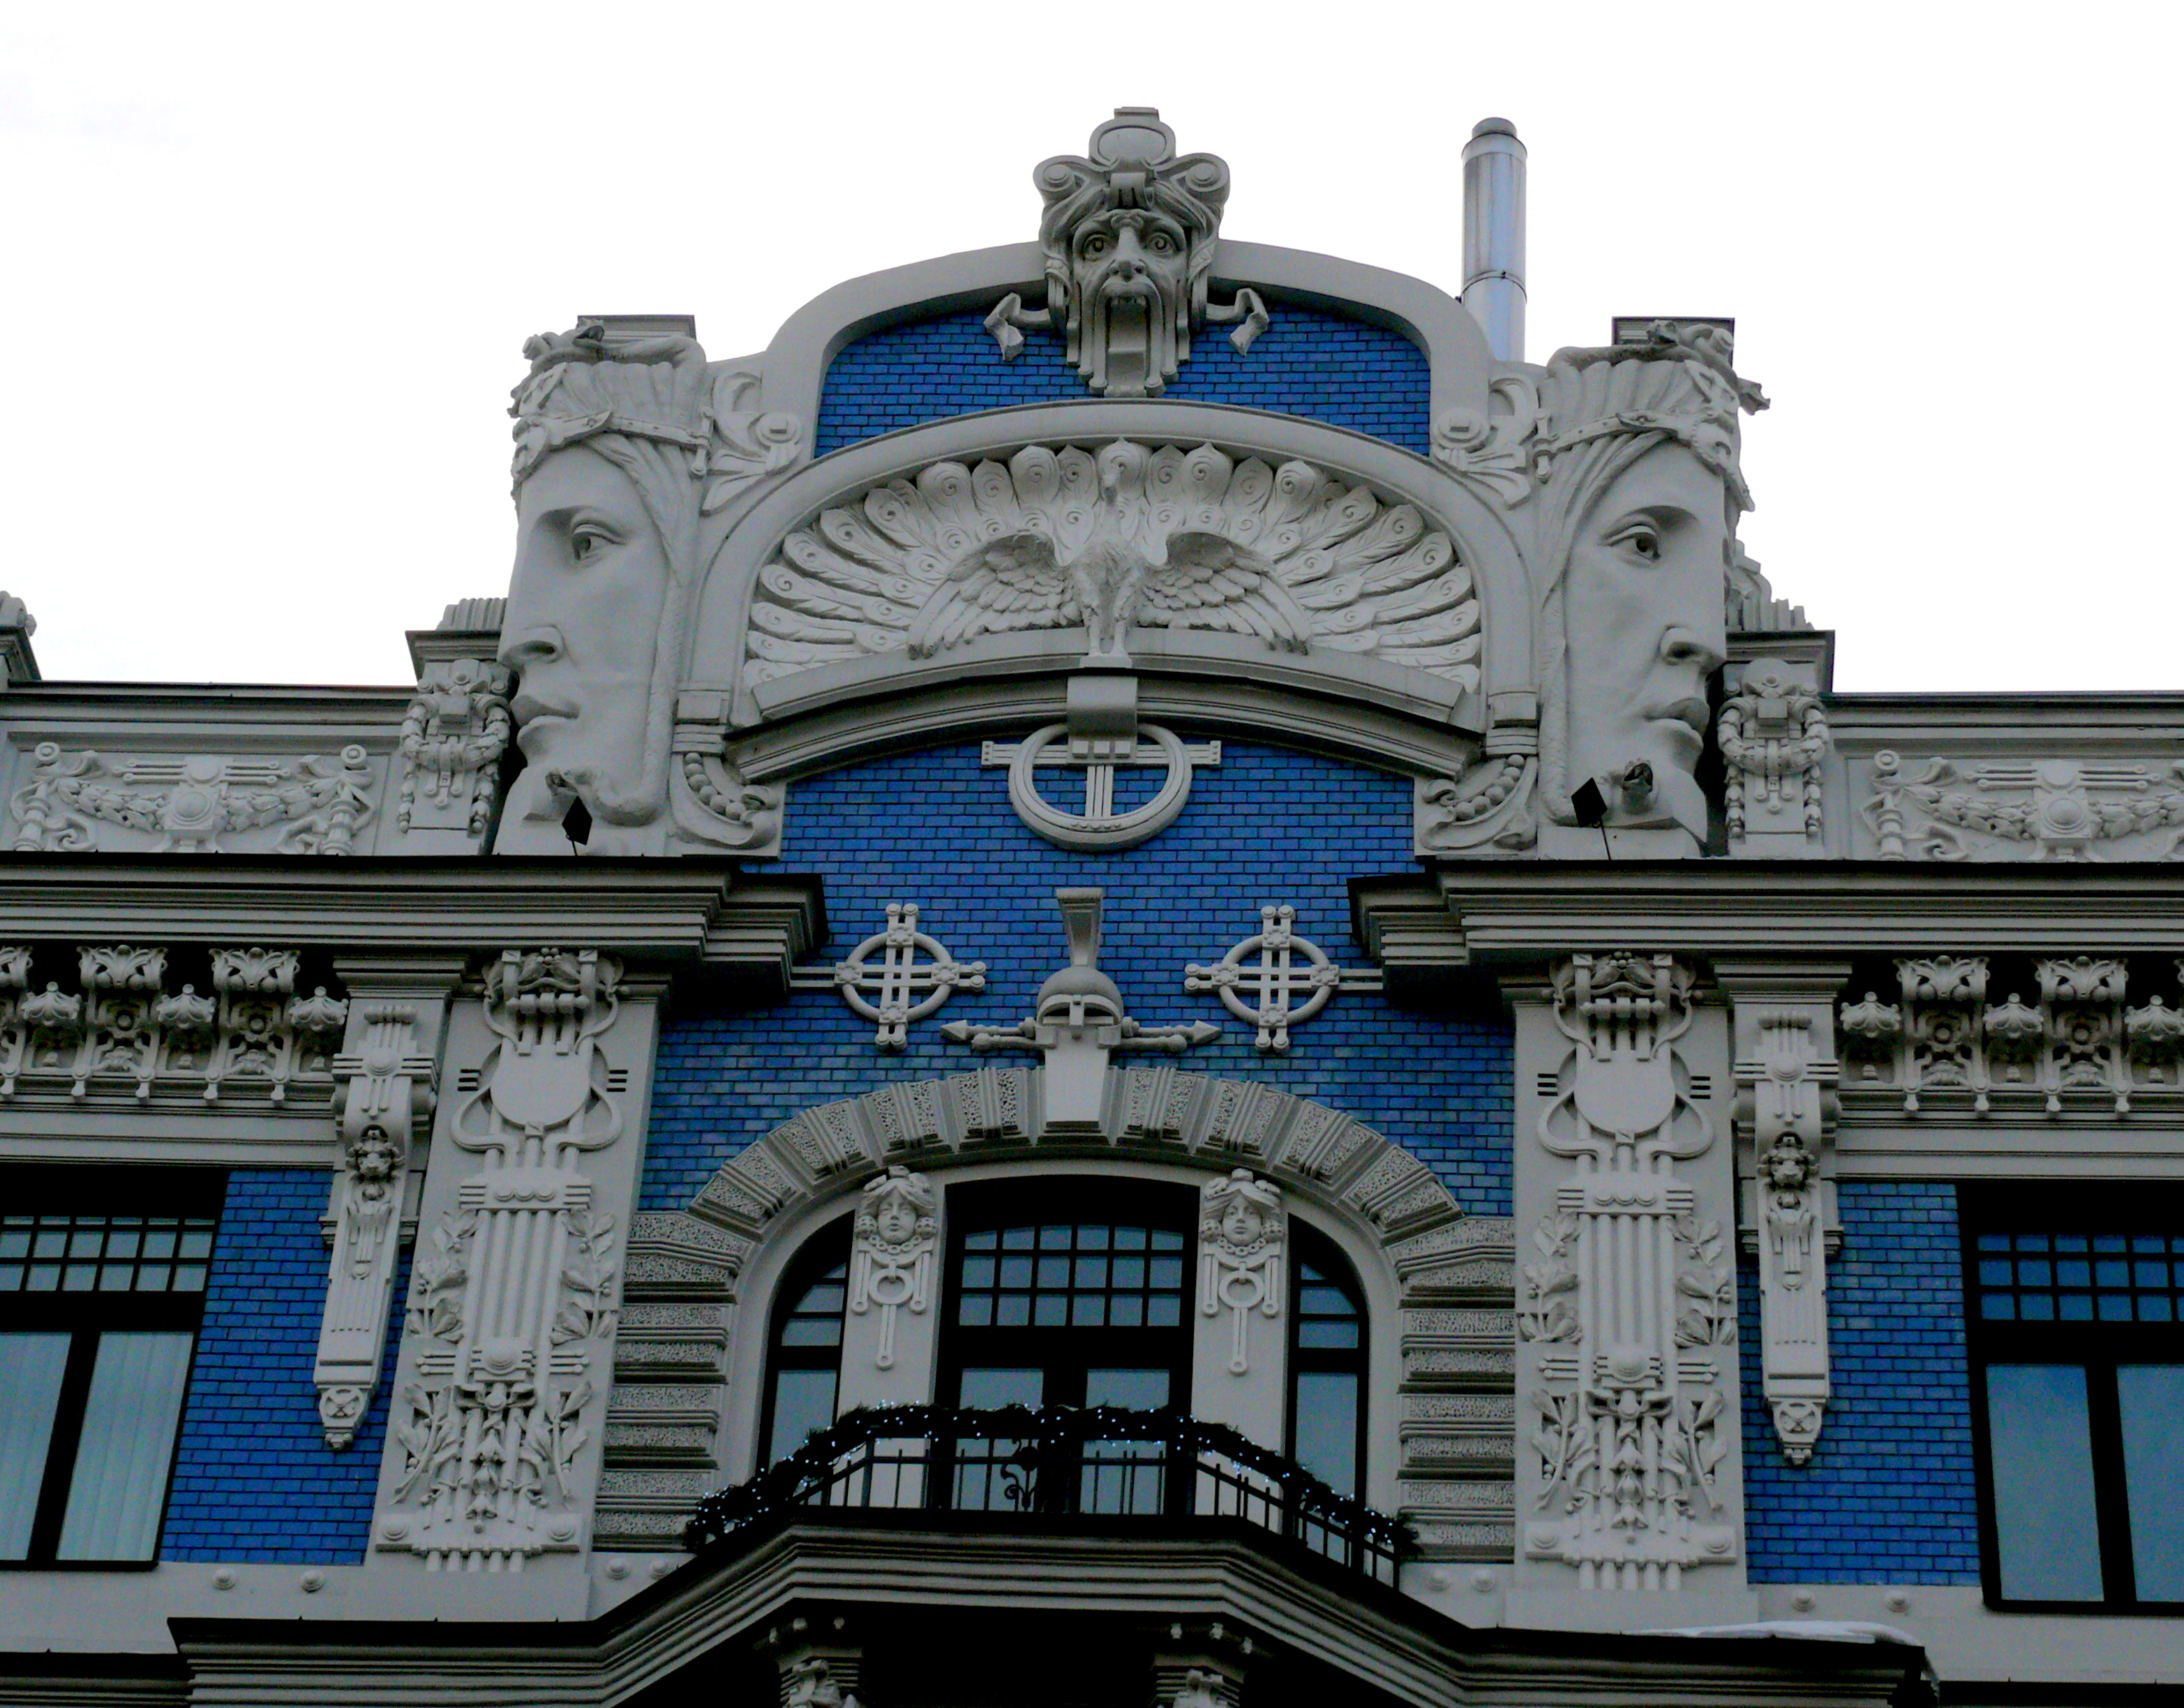 Related keywords suggestions for jugendstil architecture for Architecture art nouveau